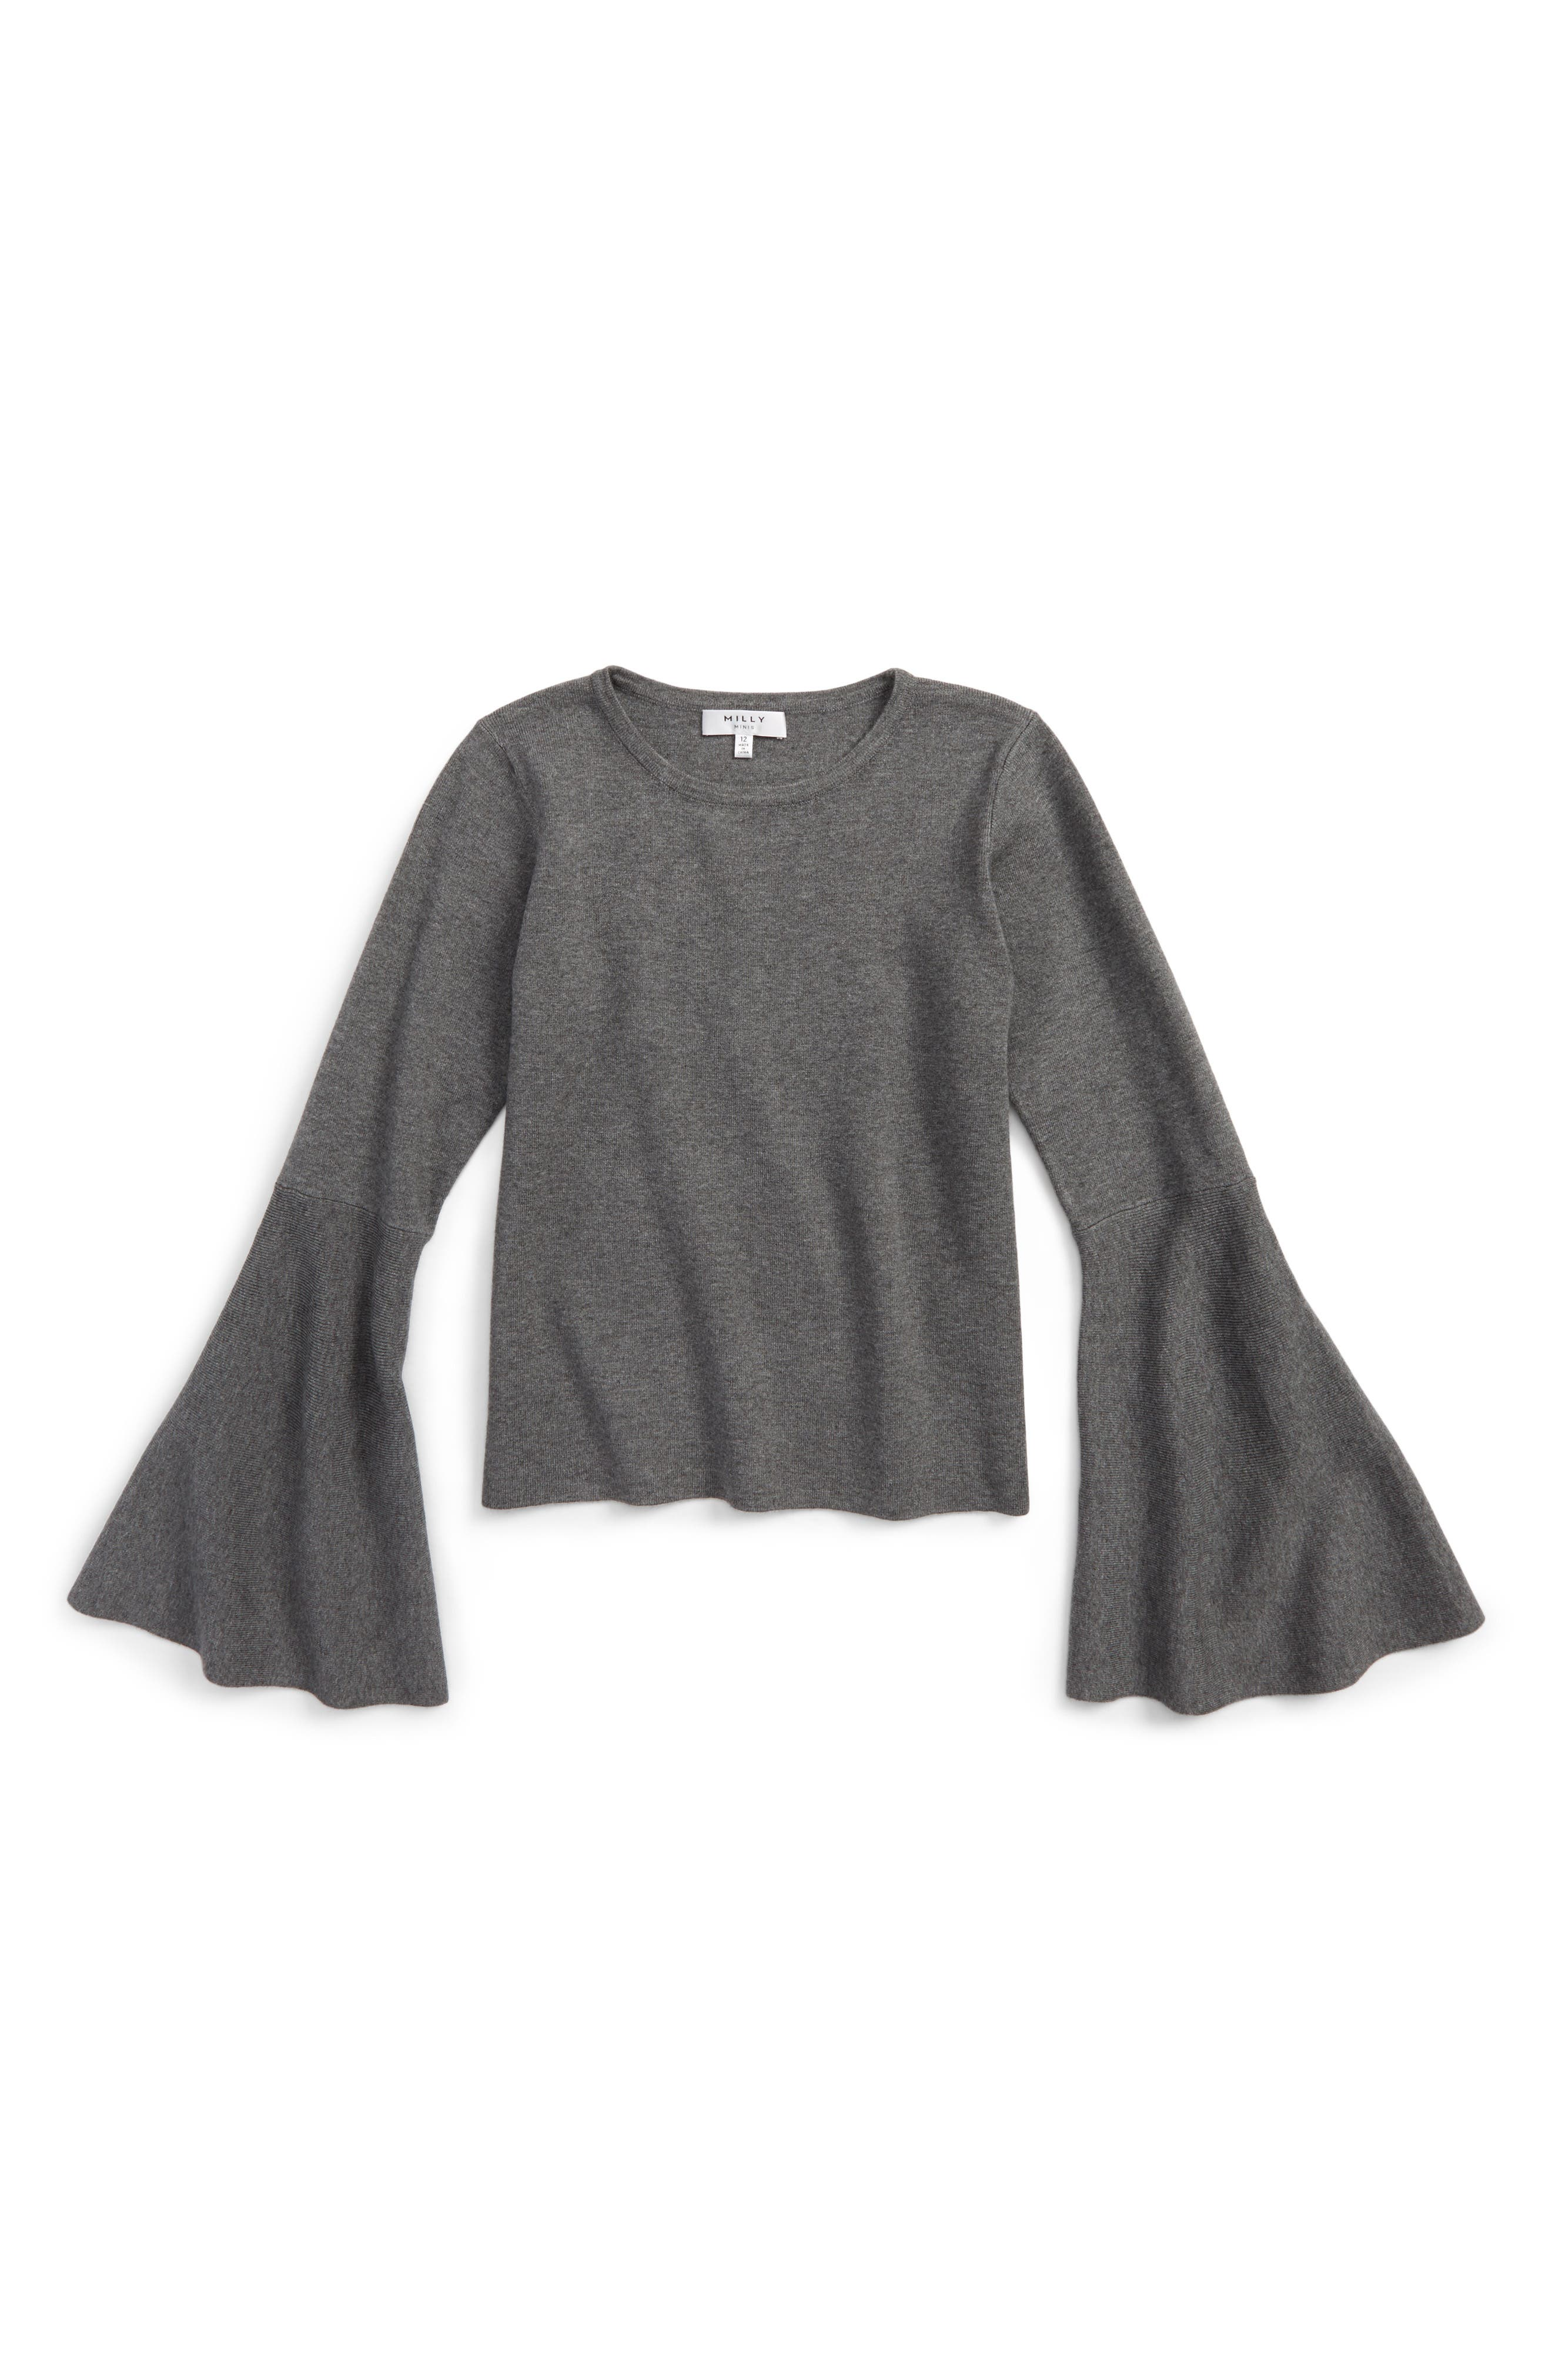 Bell Sleeve Top,                         Main,                         color, Grey